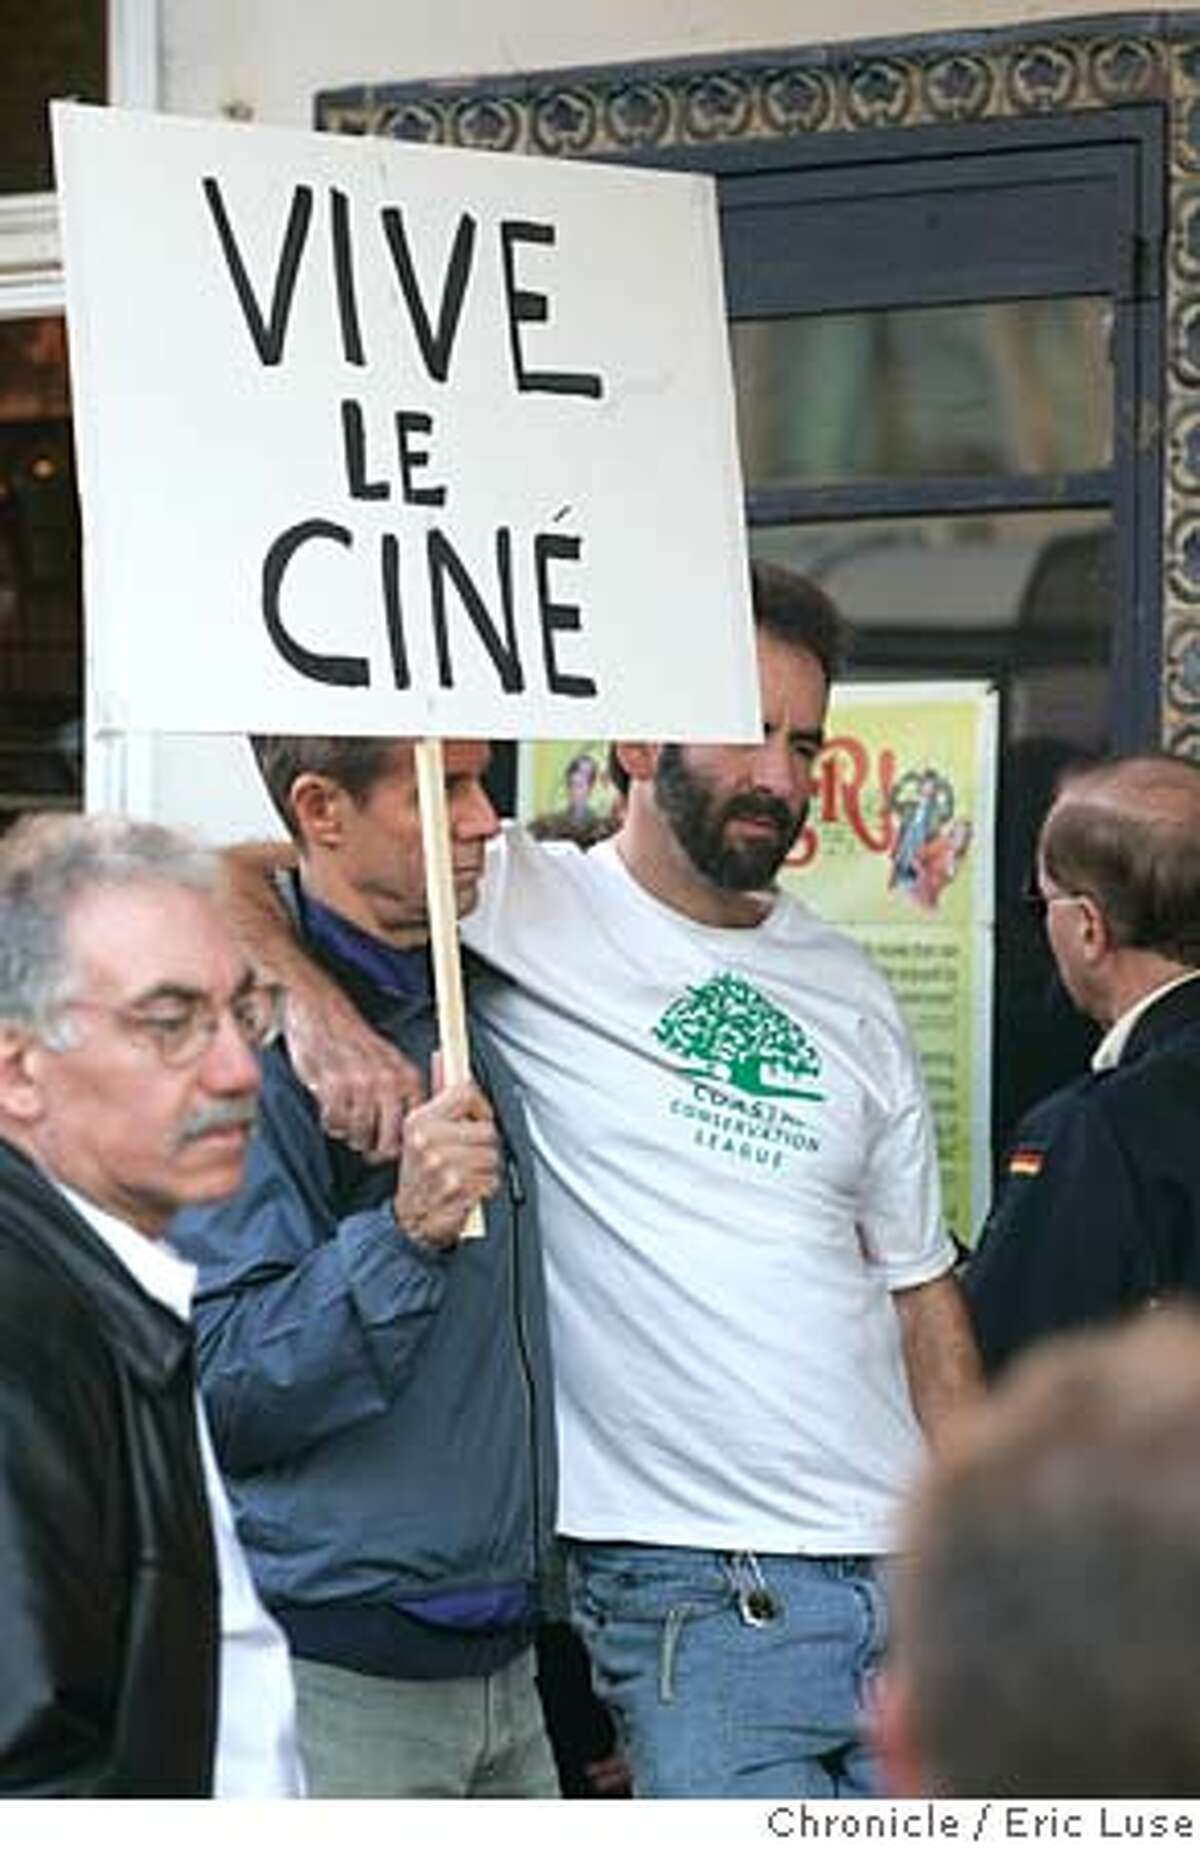 castro048_el.jpg l to r: Chuck Bierwirth and John Daniel, San Francisco, protesting in front of The Castro Theatre.far left (out of focus) is passing by. Protestors will gather from 3 to 5 pm. For the past 28 years, we have taken the Castro Theatre for granted. We always assumed it would remain a unique combination of beautiful movie palace and intelligent, innovative programming. But now this cultural treasure is in jeopardy. The owners' recent decision to dismiss Anita Monga, one of the top programmers in the country, has had repercussions that are only beginning to be felt. Filmmakers and distributors have pulled their films from the Castro's upcoming schedule. Because of Monga's abrupt departure, the Castro�s ability to present rare archival prints, re-released classics, and cutting-edge documentaries is imperiled. The Castro owners reportedly want to do more �family friendly� programming, and Ted Nasser, who�s currently running the theatre, has apparently been concerned with the gay content of some of the films Monga chose. Event on 12/18/04 in San Francisco. Eric Luse / The Chronicle Ran on: 12-19-2004 San Franciscans Chuck Bierwirth (left) and John Daniel (right) carry one sign at a protest staged by cinema fans upset over the firing of the Castro Theatres longtime programmer.